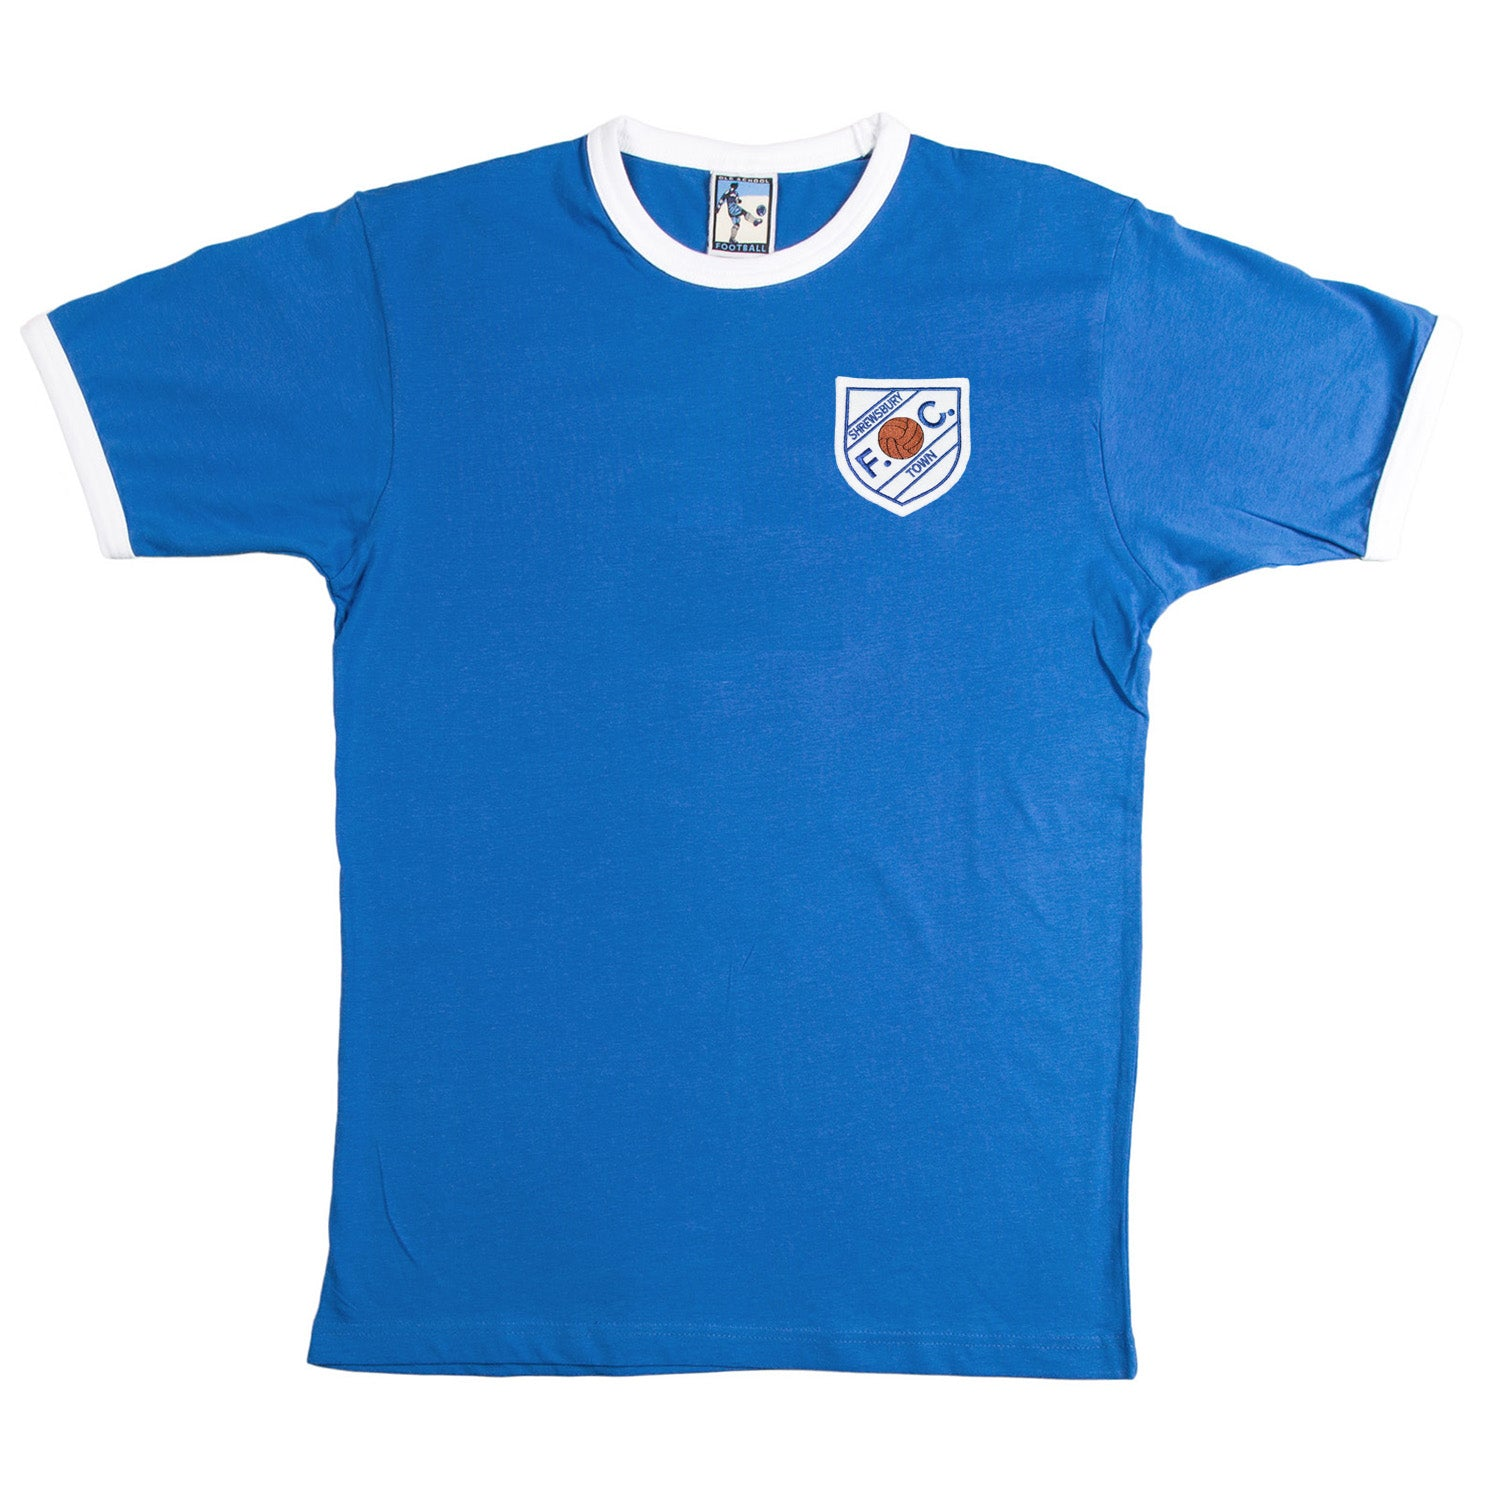 Shrewsbury Town Retro Football T Shirt 1960s - T-shirt